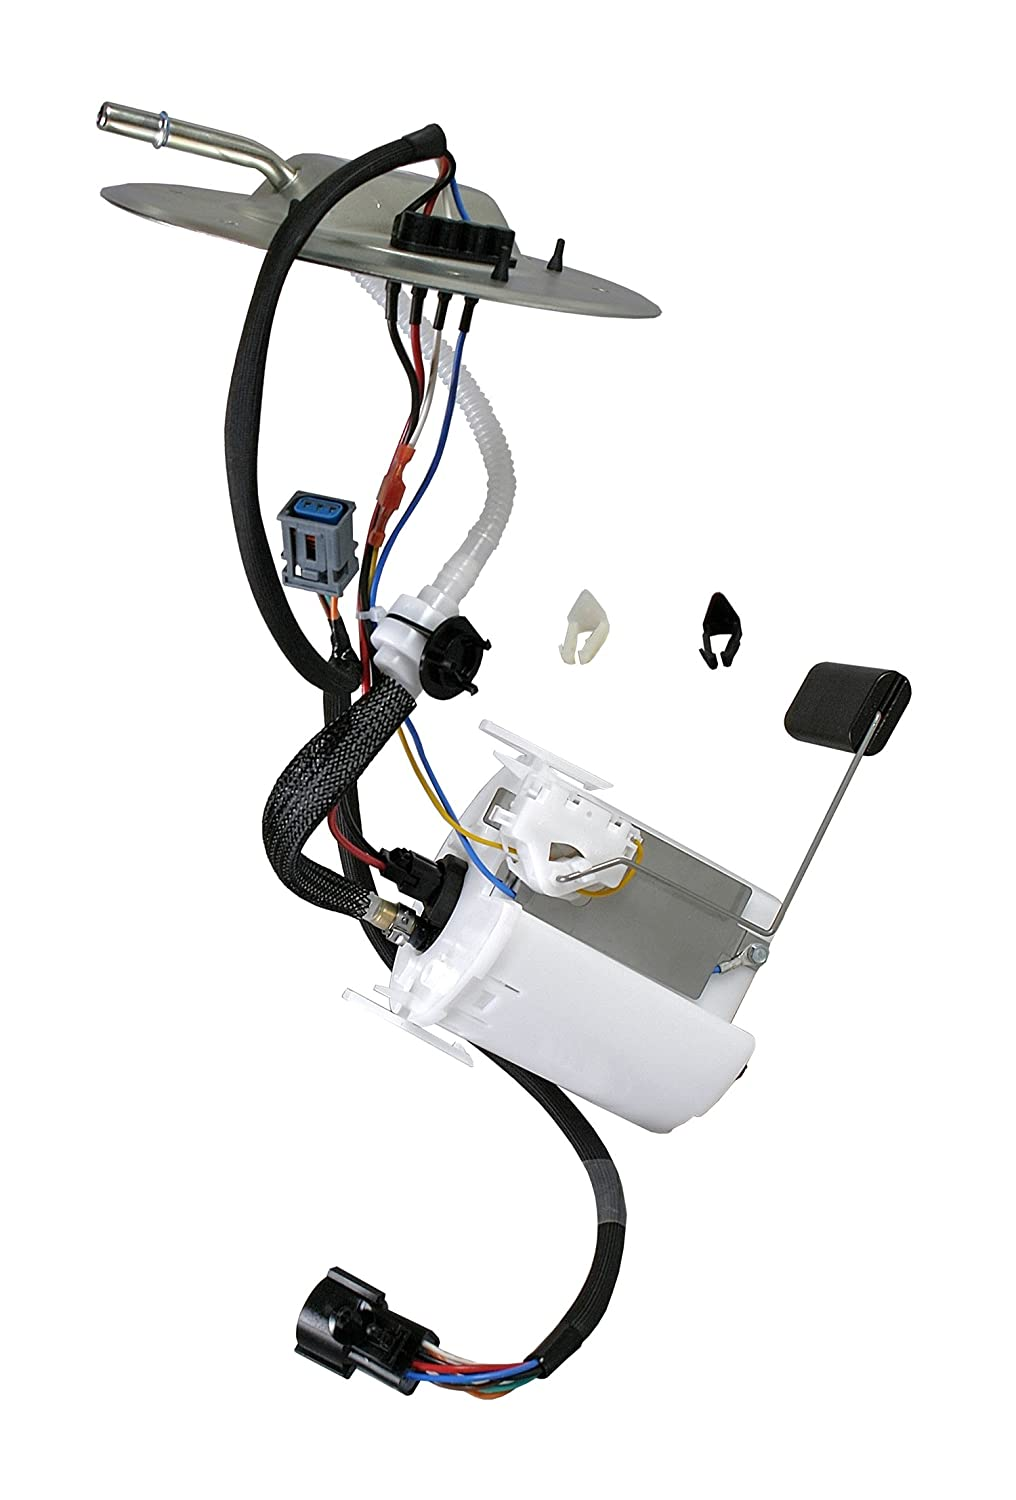 Airtex E2301m Fuel Pump Module Assembly Automotive Filter 2001 Ford Mustang